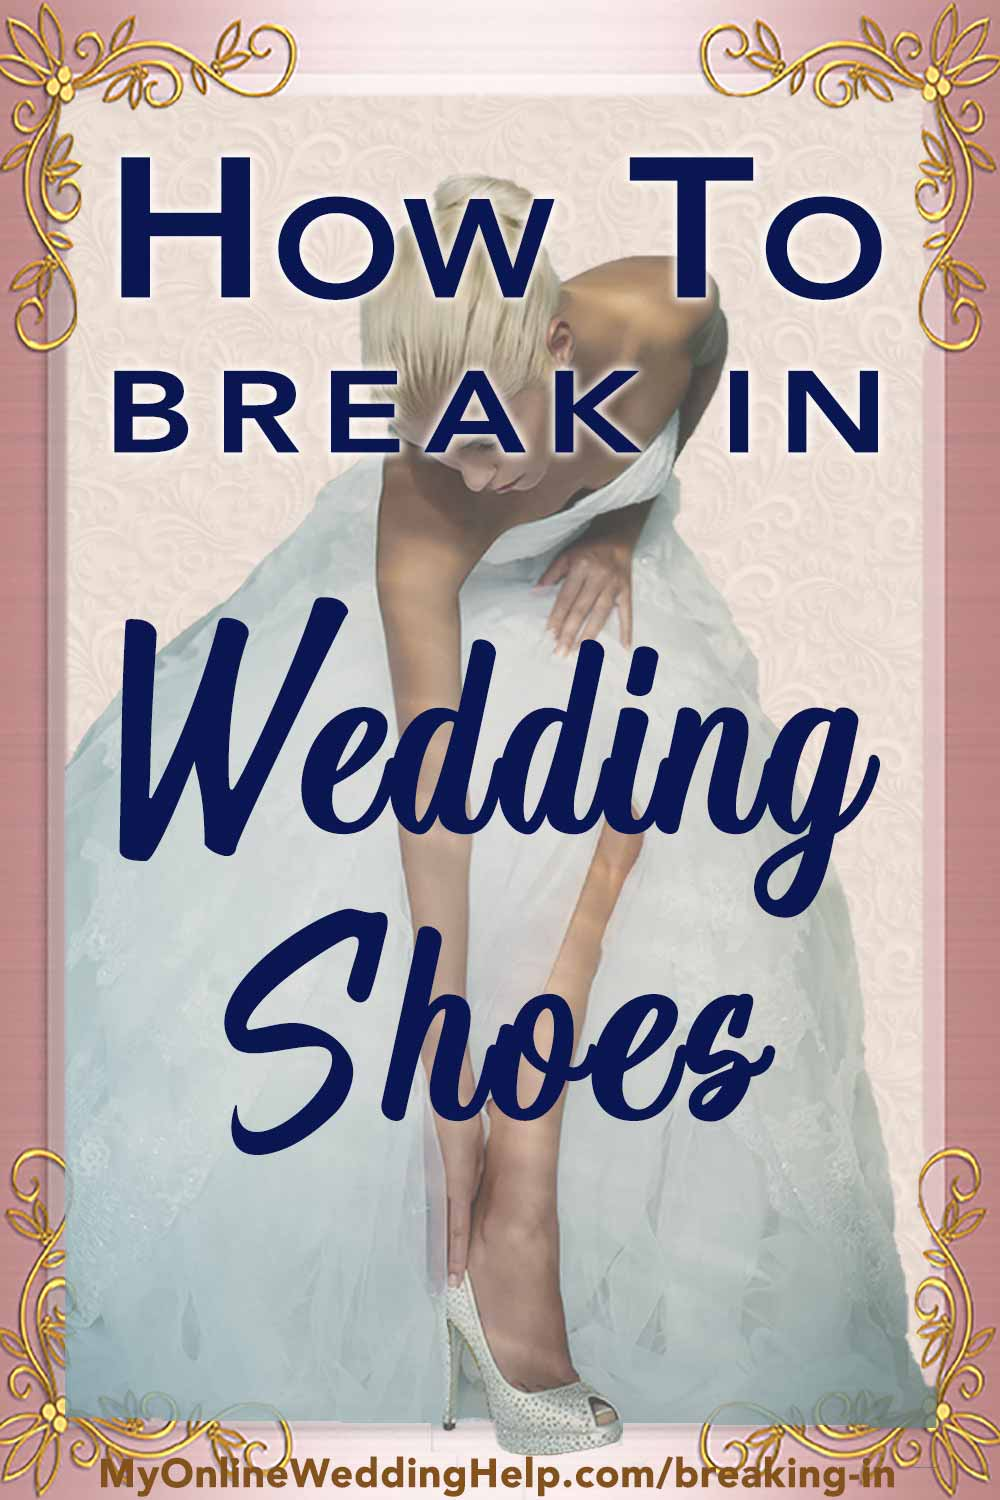 How to break in wedding shoes. Tips for making new wedding heels comfortable, without ruining them or your feet. Shoe comfort should be part of your wedding planning! Read it on the My Online Wedding Help blog. #WeddingShoes #WeddingTips #WeddingIdeas #BreakinginShoes